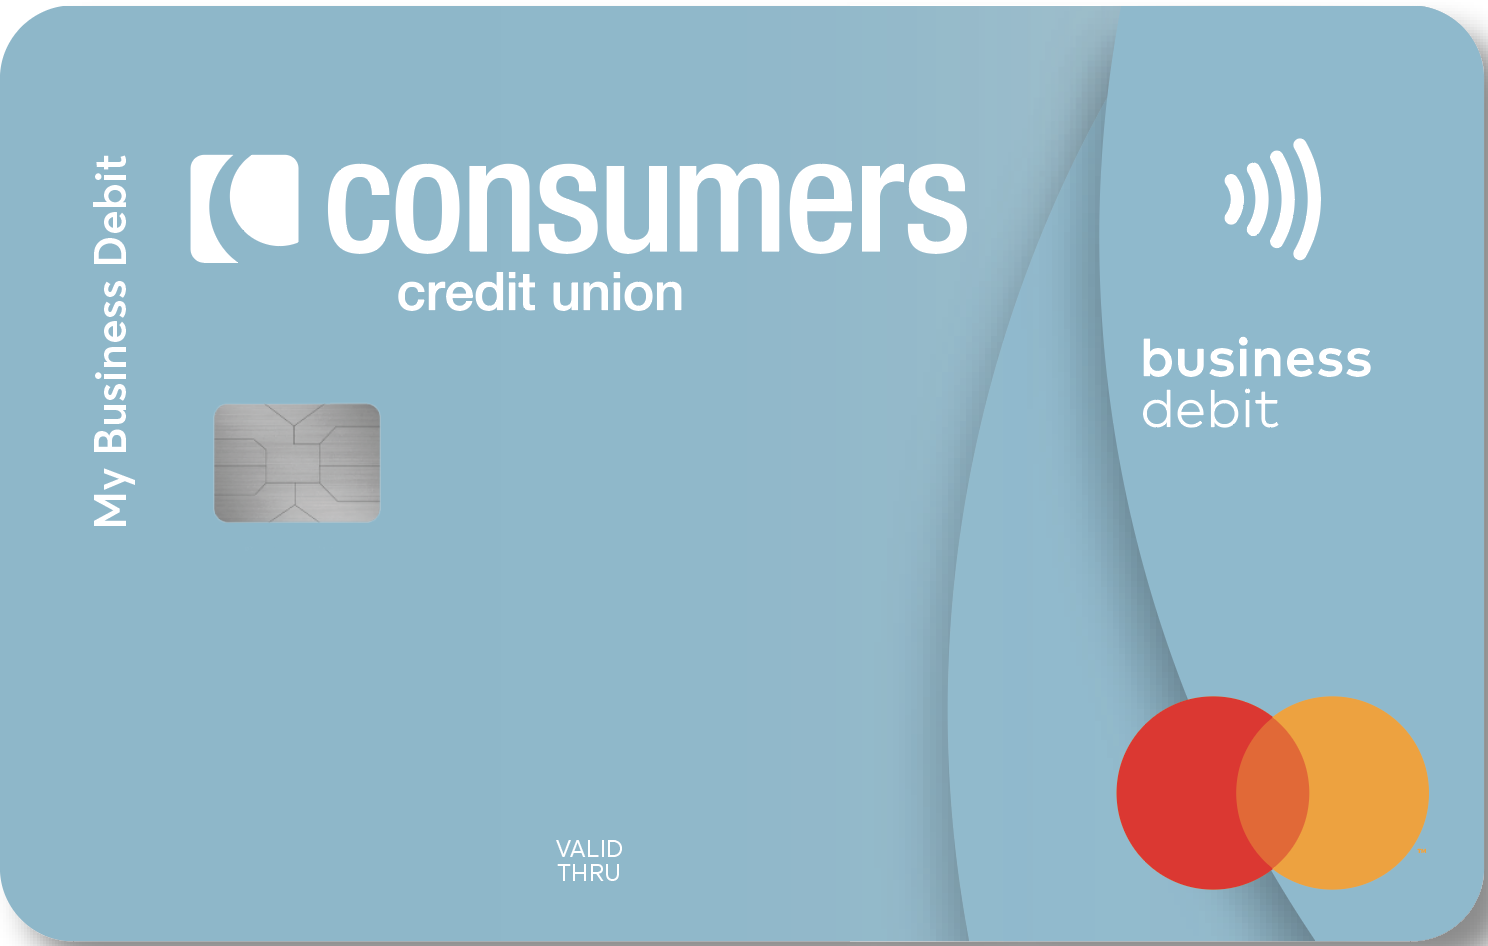 A brand new business debit is on the way!